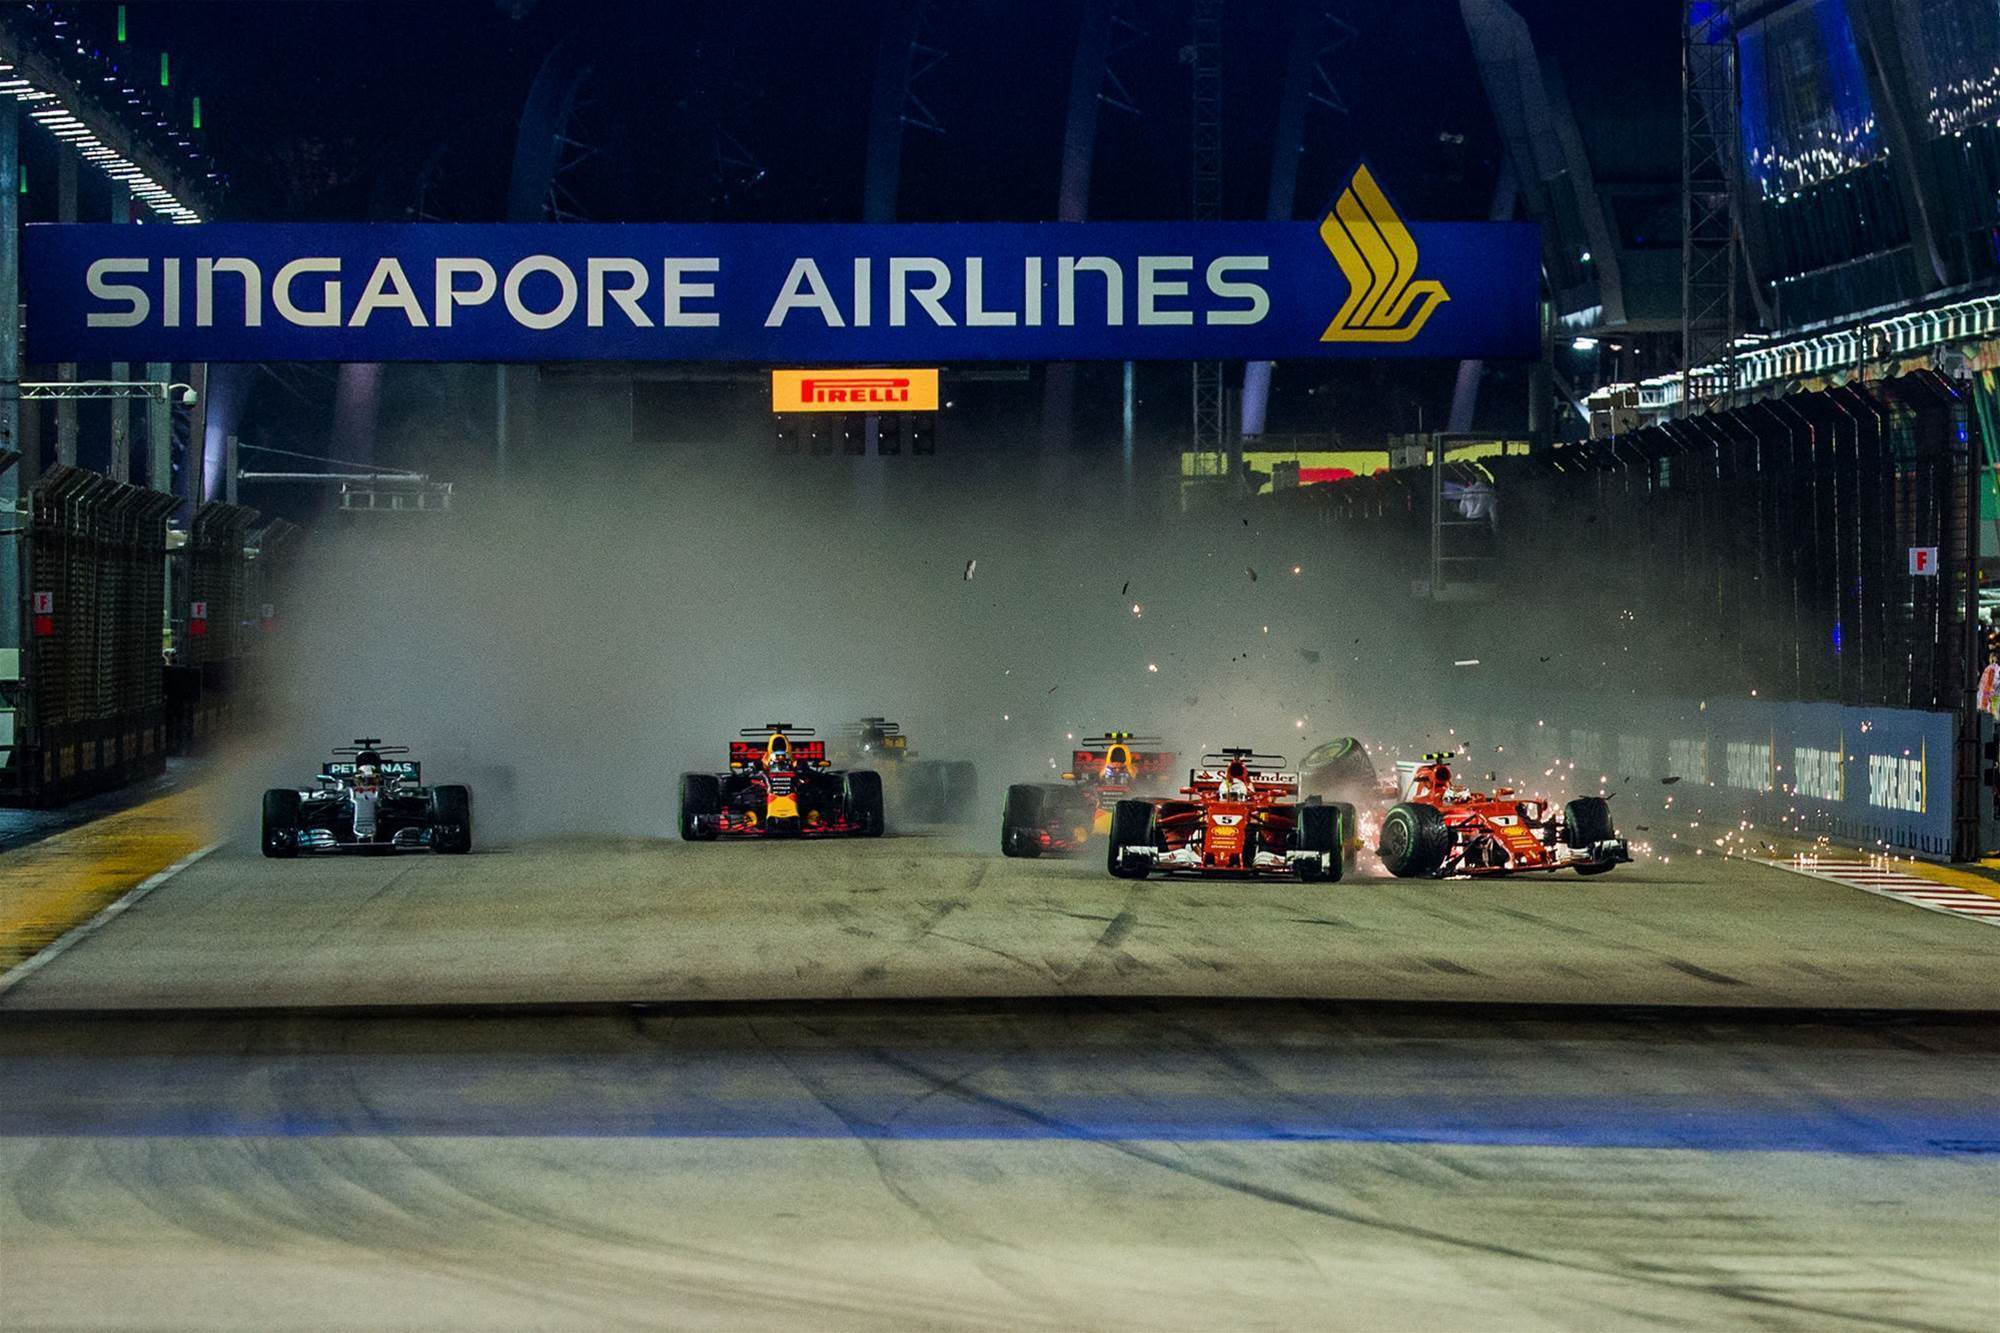 No one to blame in Singapore F1 pileup: FIA